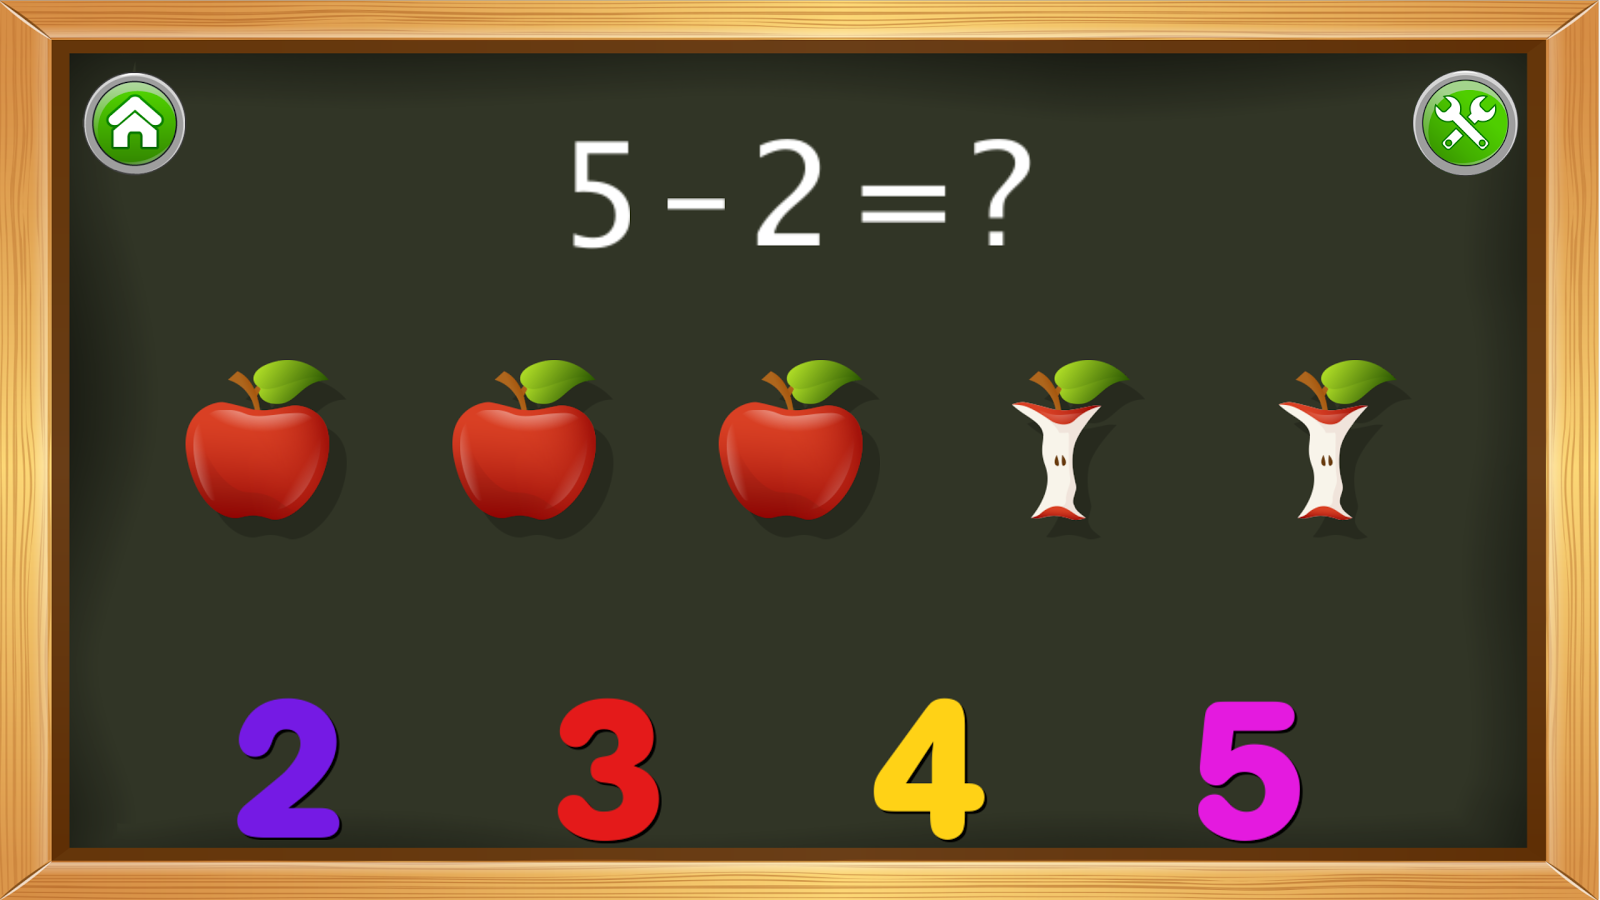 Can you do this math question? ( It's for 7 year olds ...apparently)